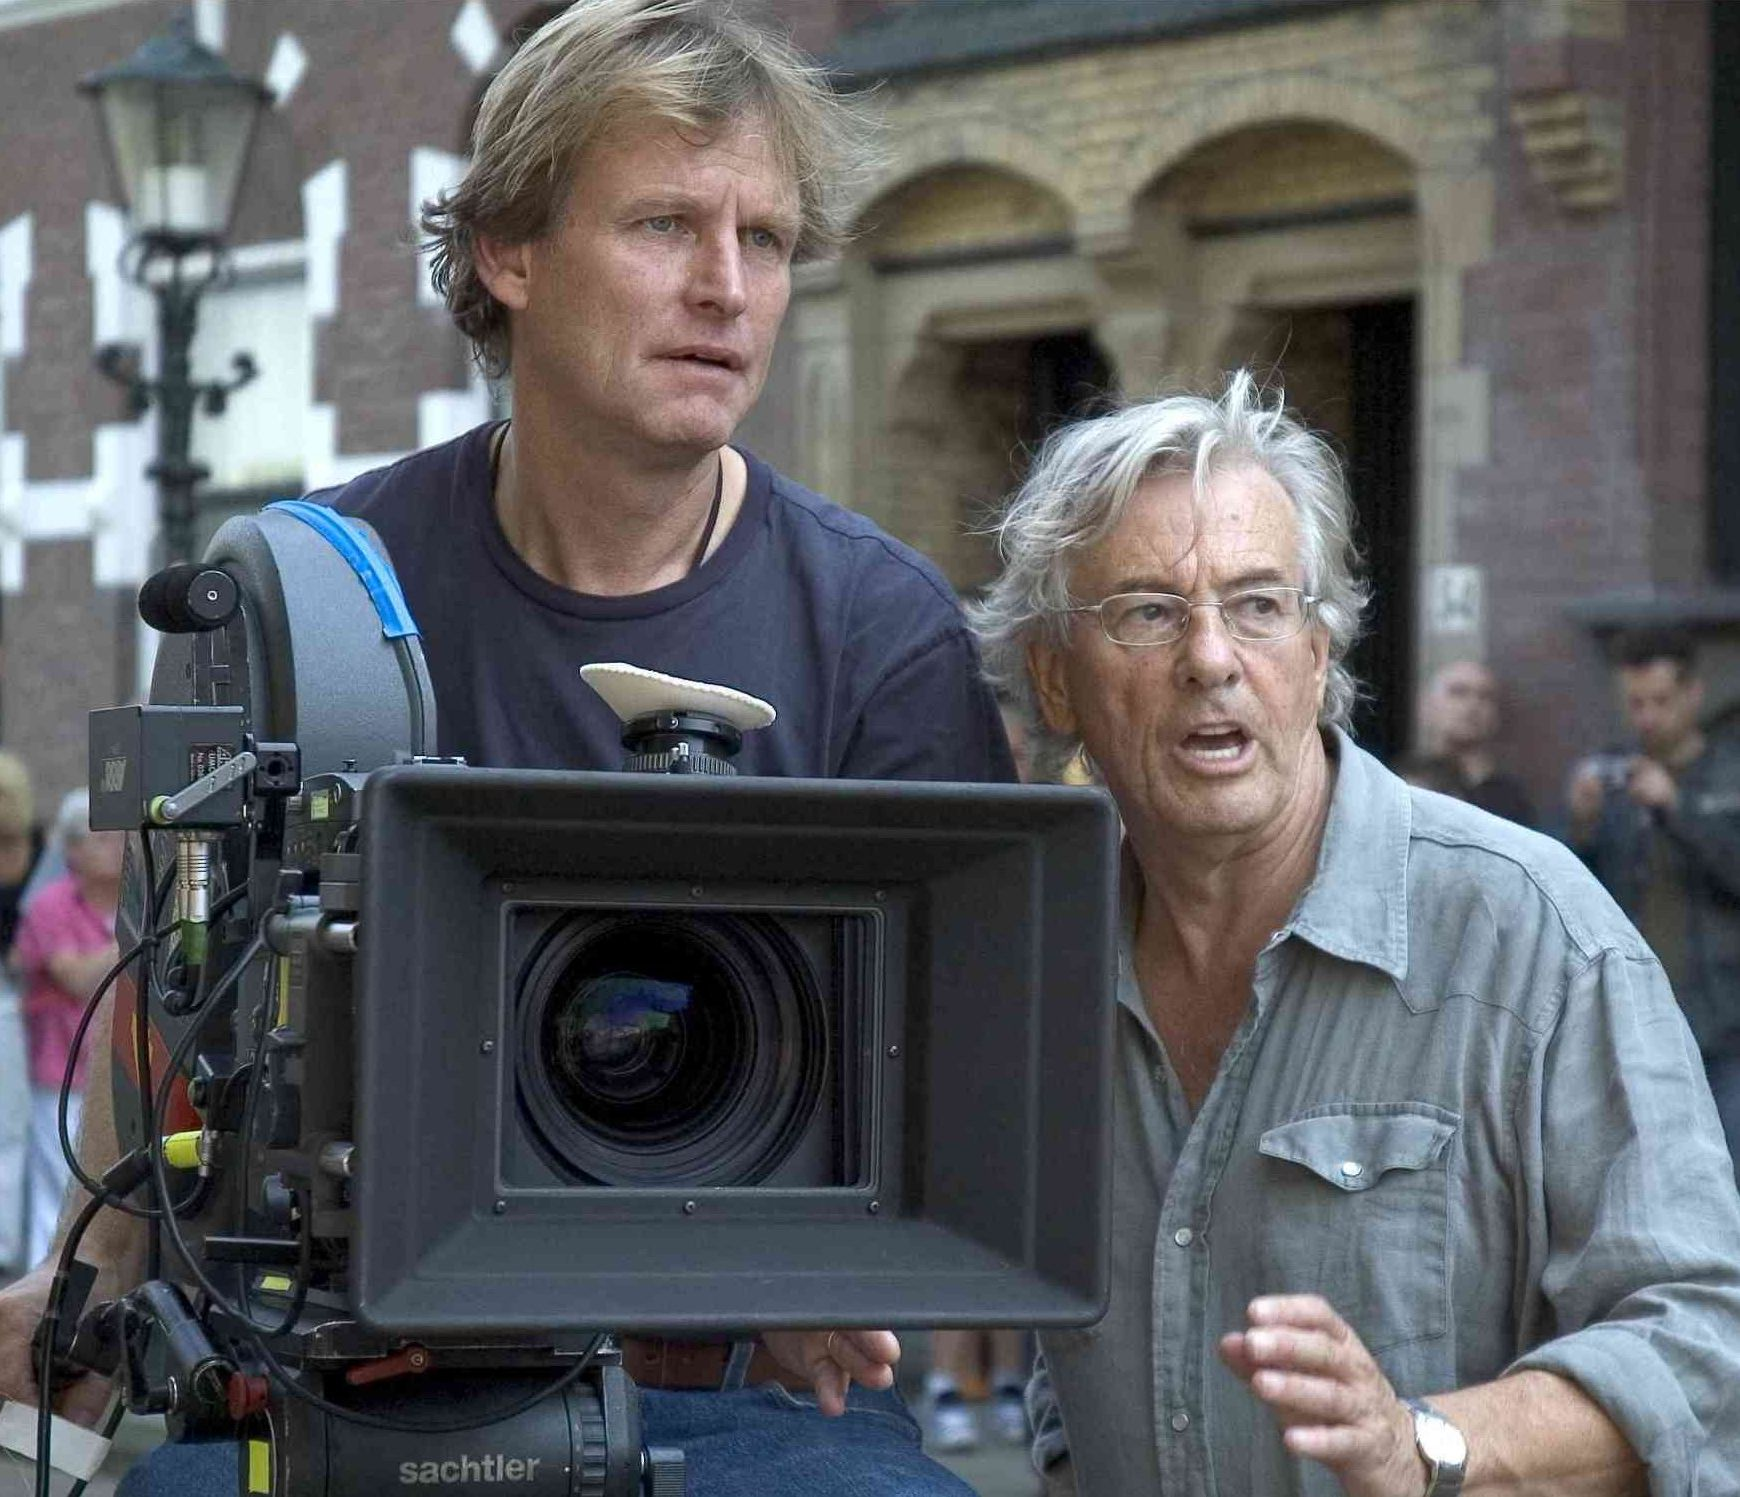 Director Lenny Abrahamson working with Paul Verhoeven